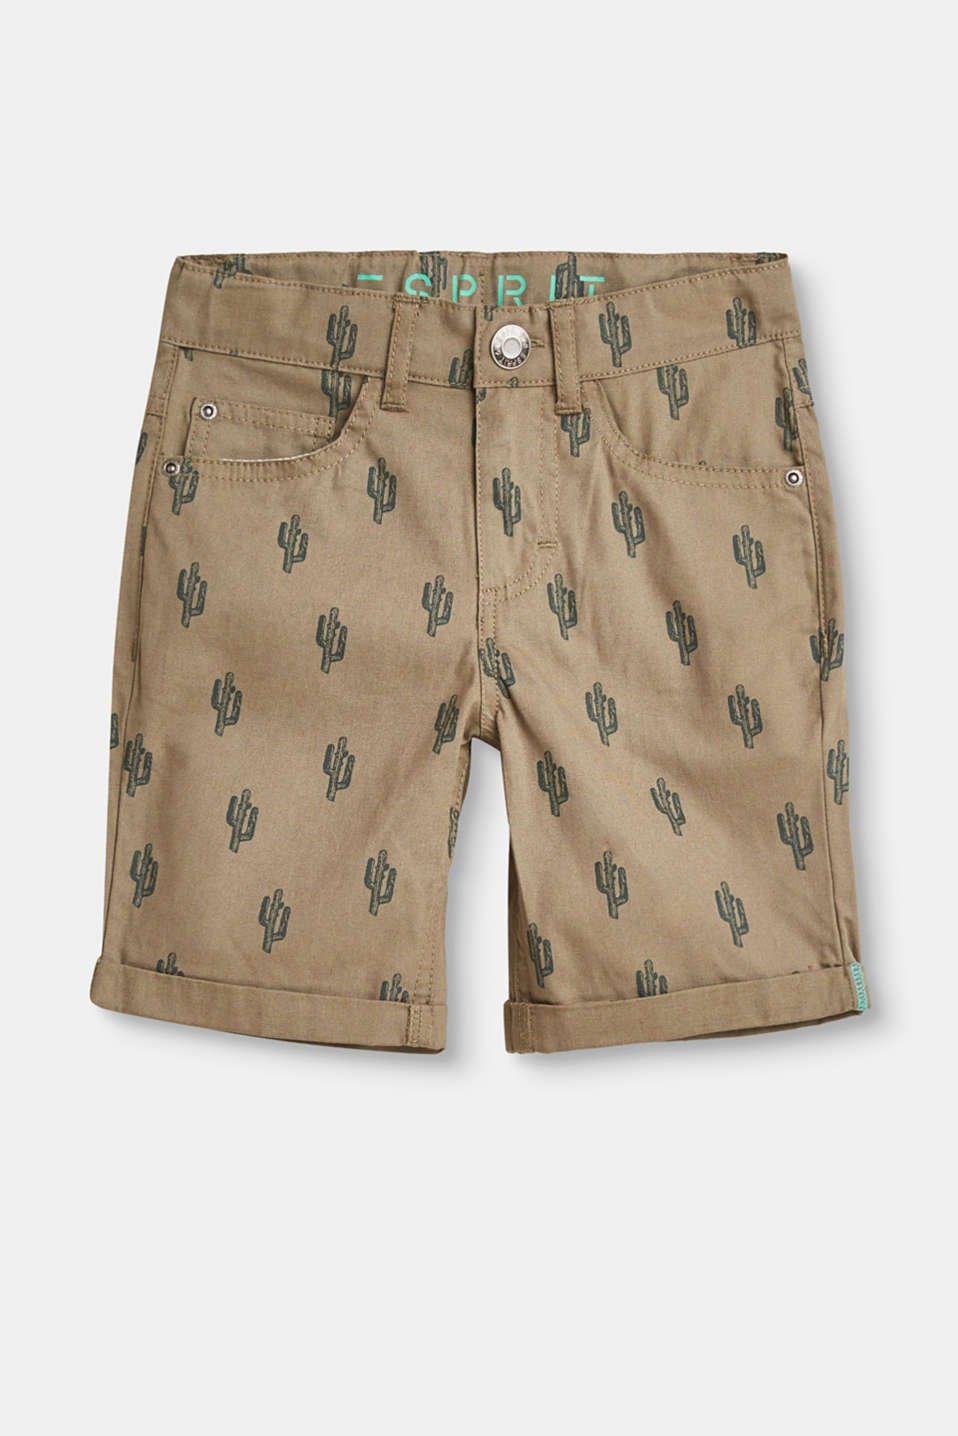 Esprit - Cotton shorts with a cactus print